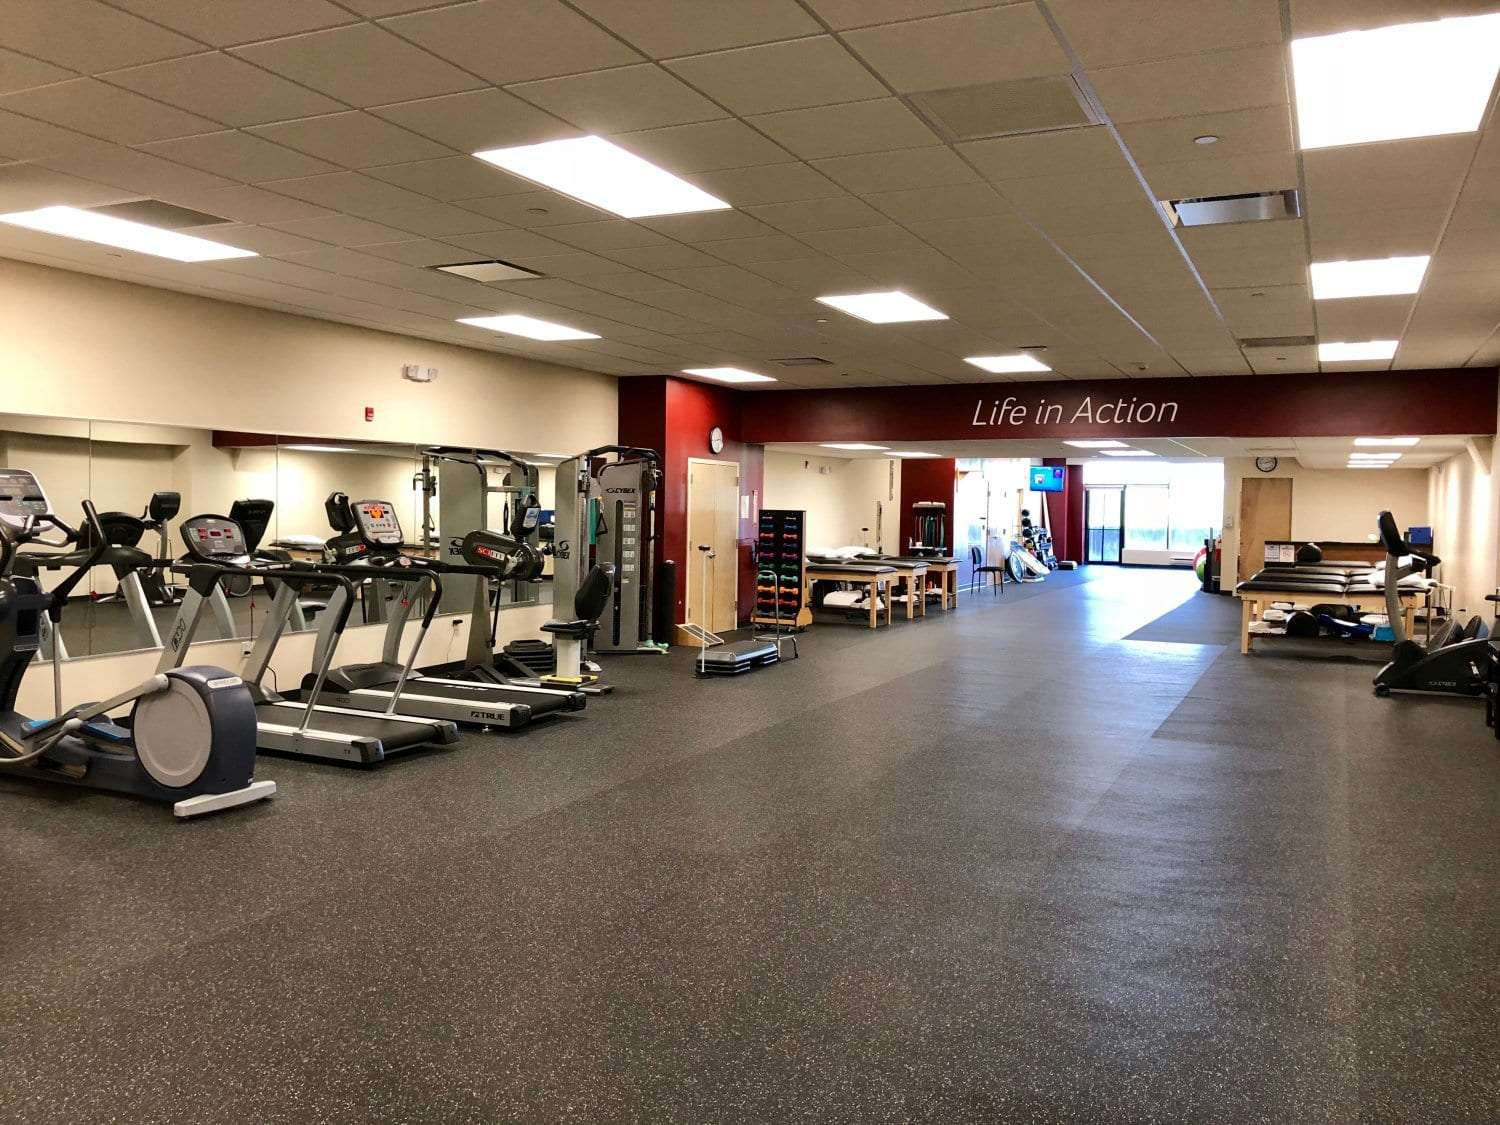 Here is another angle of our training area in our physical therapy clinic in Morristown, New Jersey at Headquarters Plaza. Photo includes treadmills, wall mirror, and stretch beds.